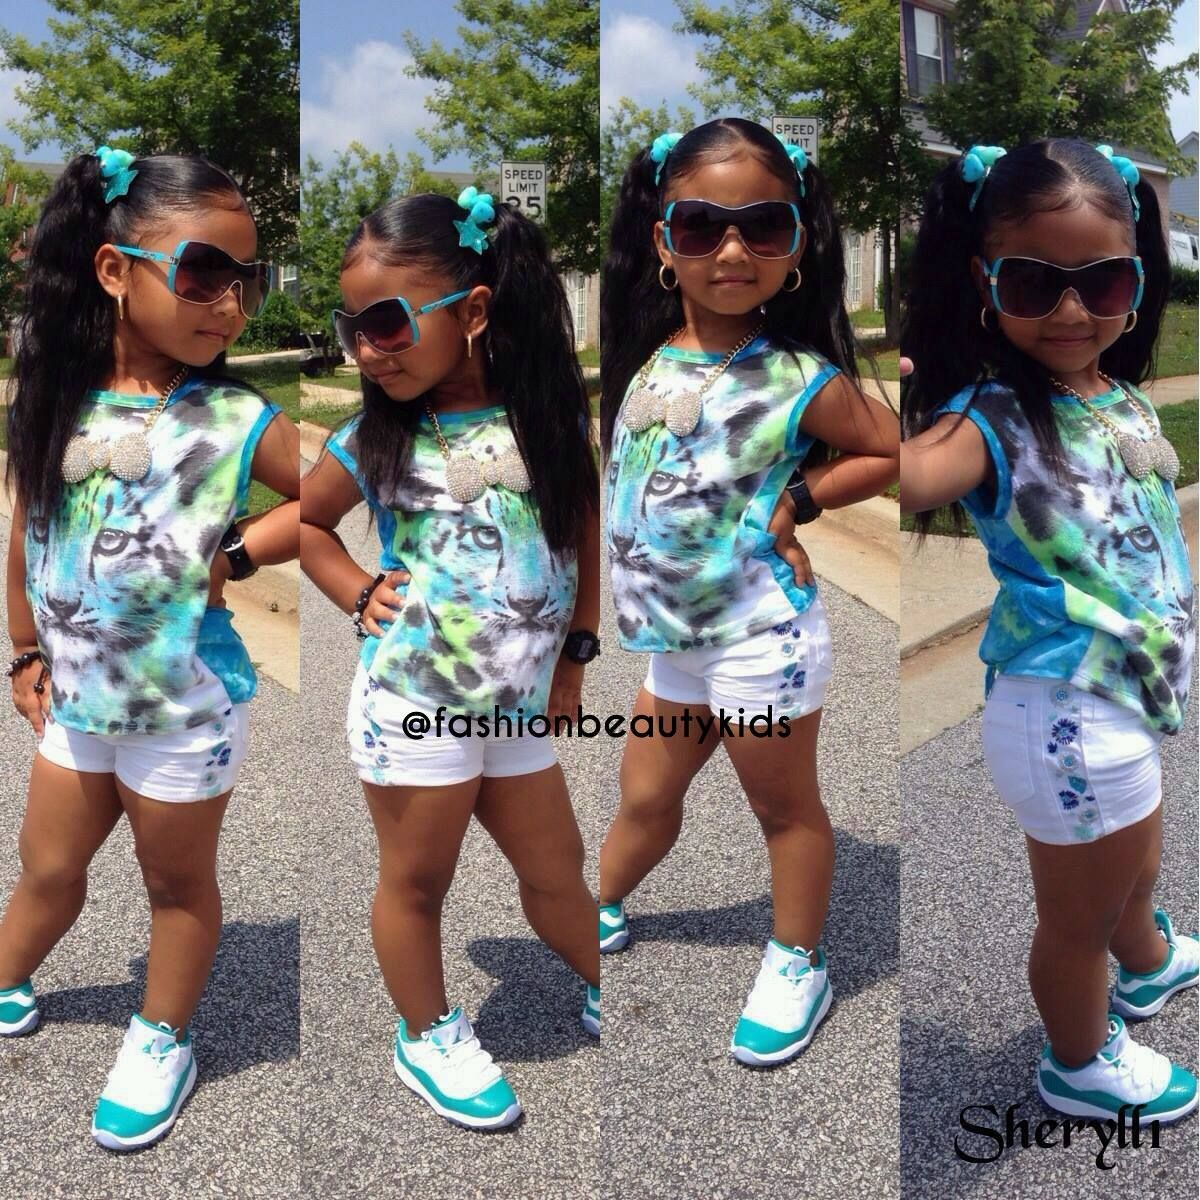 Outfit Black Girl Killing It: Image By Jade Green On Adorable Kidz With Swagg :-)